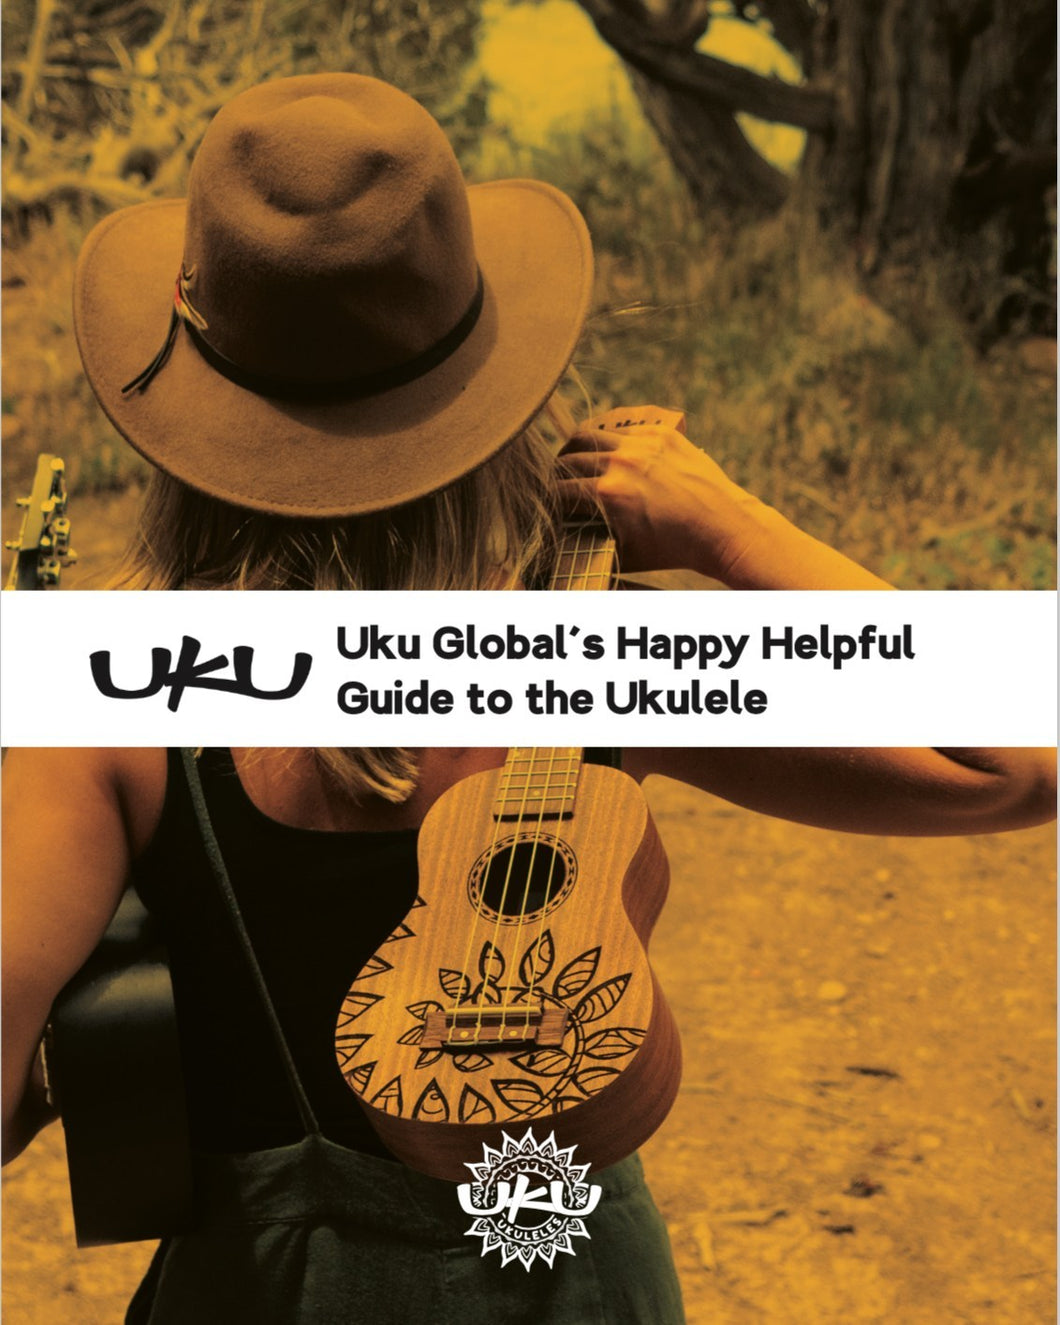 Uku Global's Happy Helpful Guide to the Ukulele